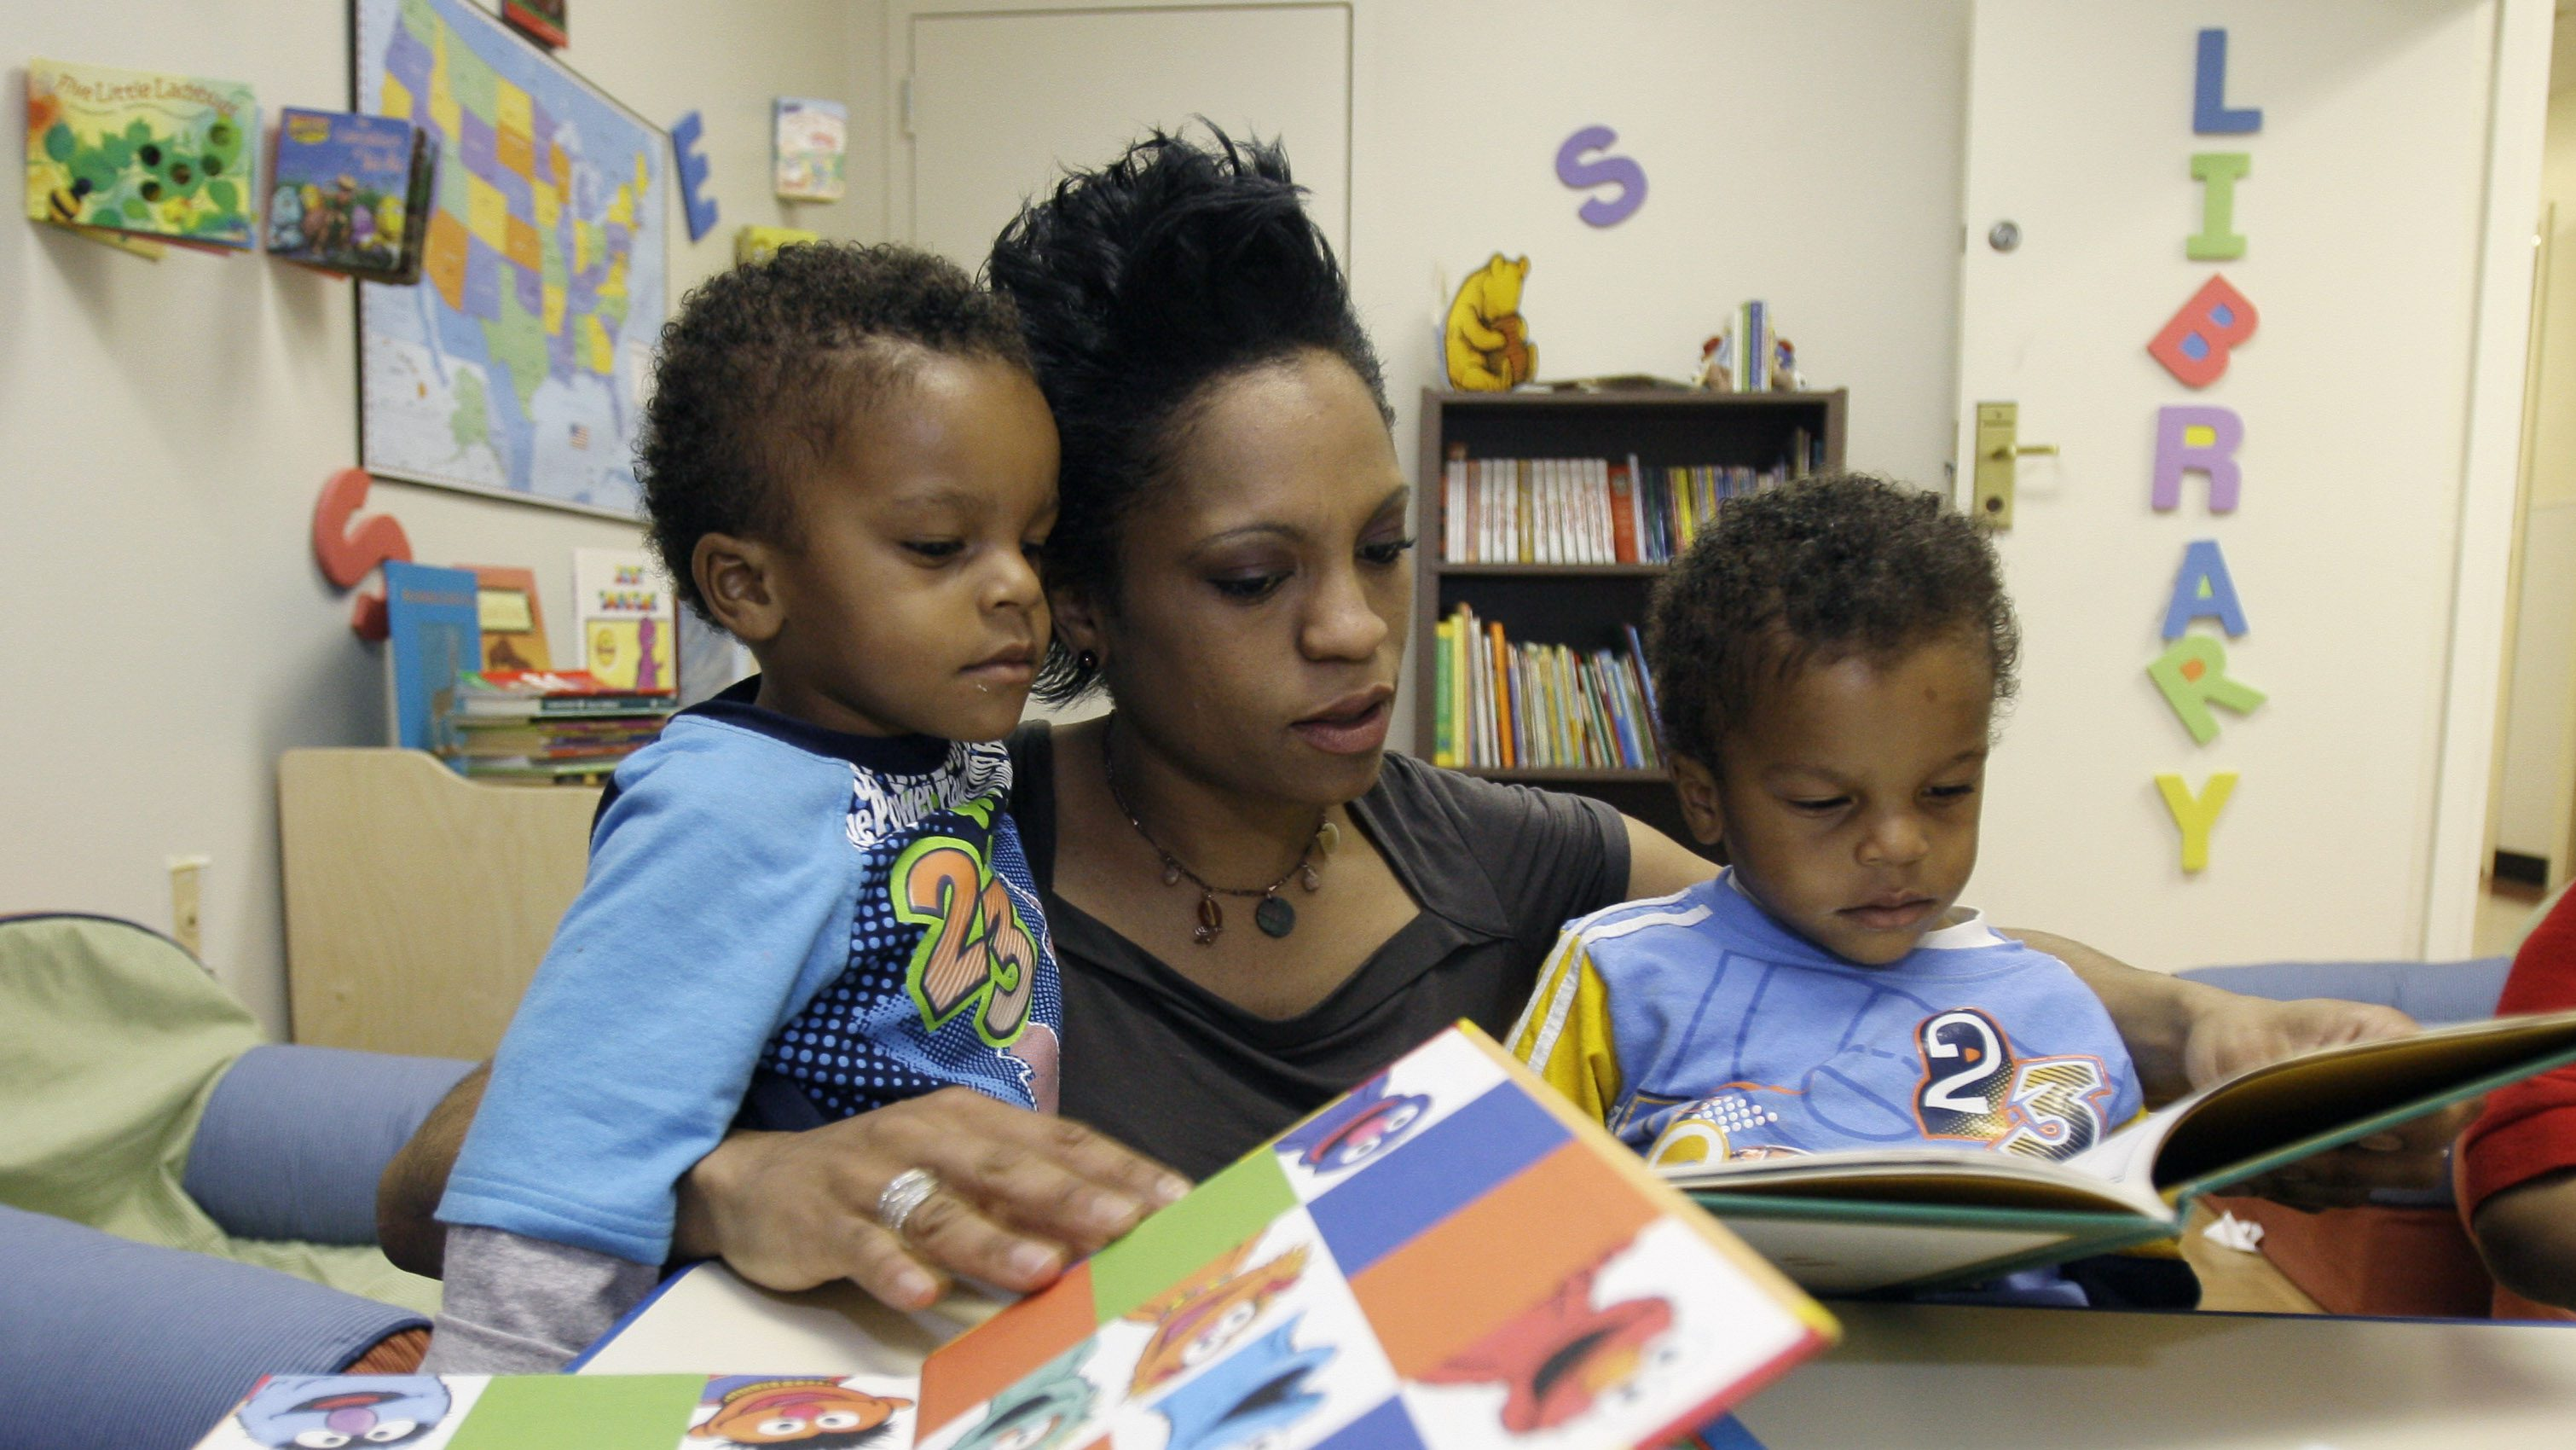 **HFR 12:01 A.M. MARCH 10** Rascheita Power, center, reads to her 2-year old twin sons, Mahdi Jalloul, left, and Kamal Jalloul at a family homeless shelter, Friday, March 6, 2009, in Dallas. According to a new report by the National Center on Family Homelessness, Texas is the worst place in the nation for homeless children, and current economic conditions will push even more families with young children out of their homes. (AP Photo/Matt Slocum)